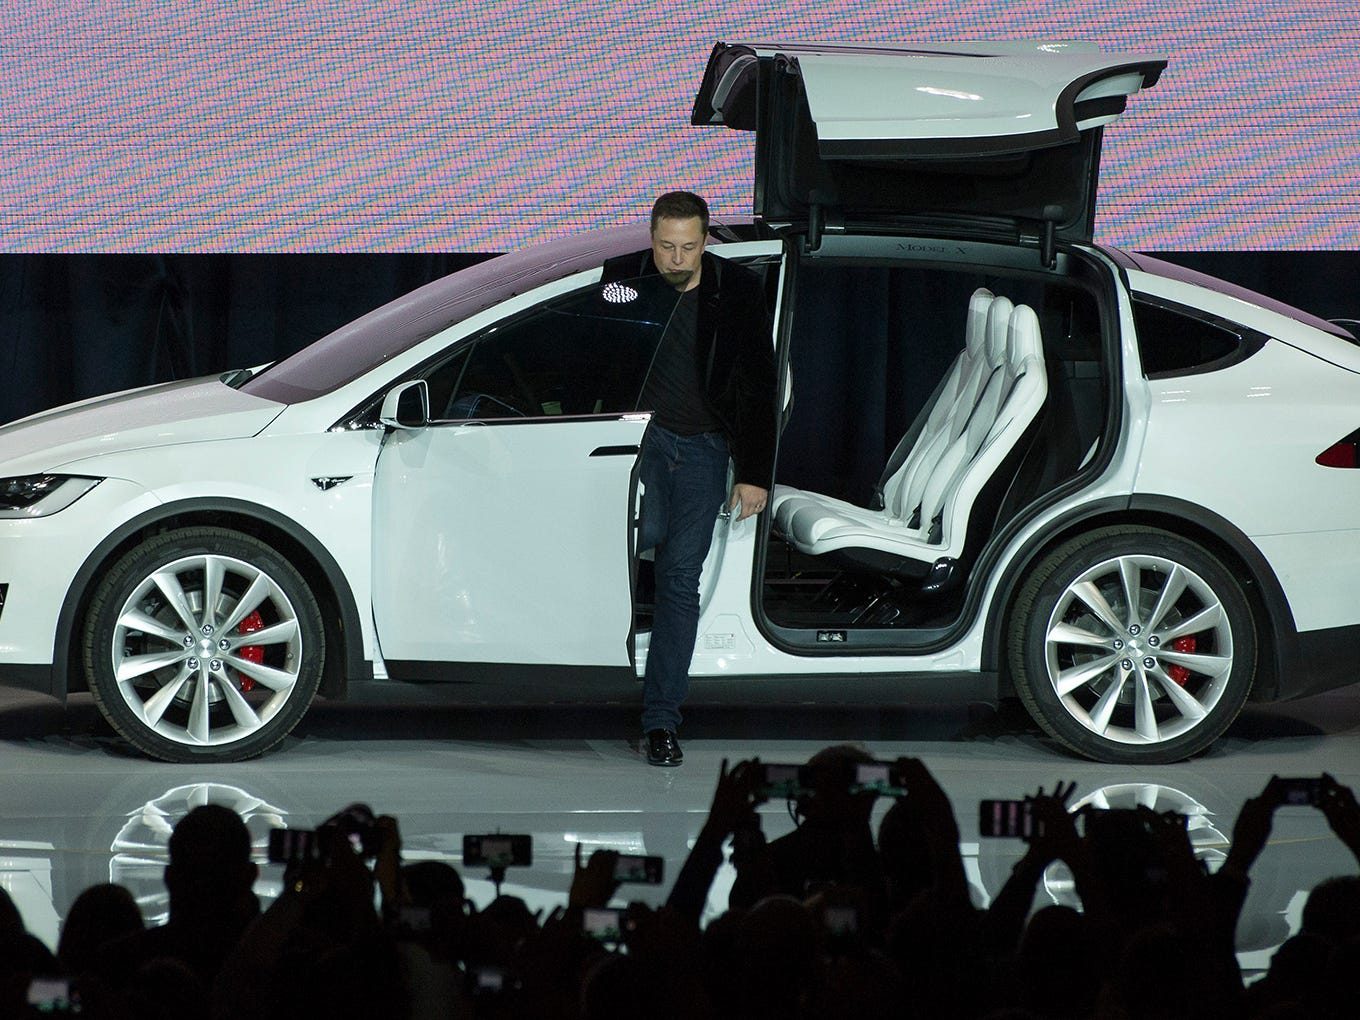 Tesla Motors  CEO Elon Musk unveils the Model X at a launch event in Fremont, Calif. Sept. 29, 2015.